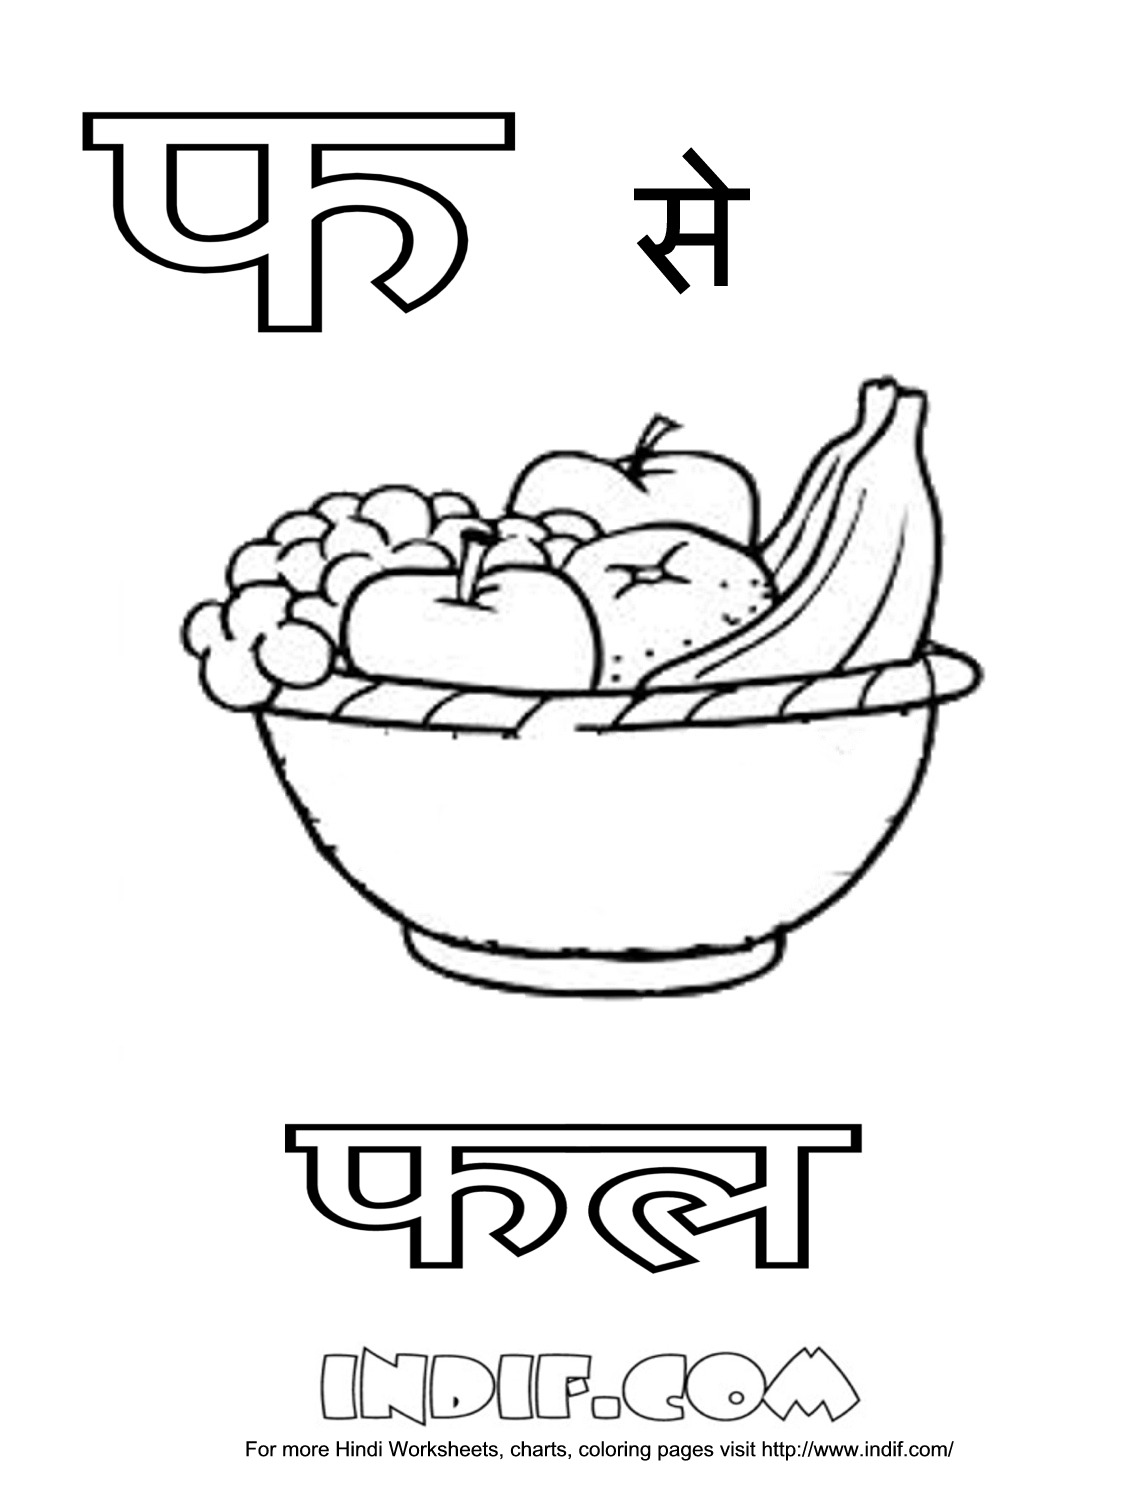 A Se Anar Writing Practice Worksheet Hindi Vyanjan T